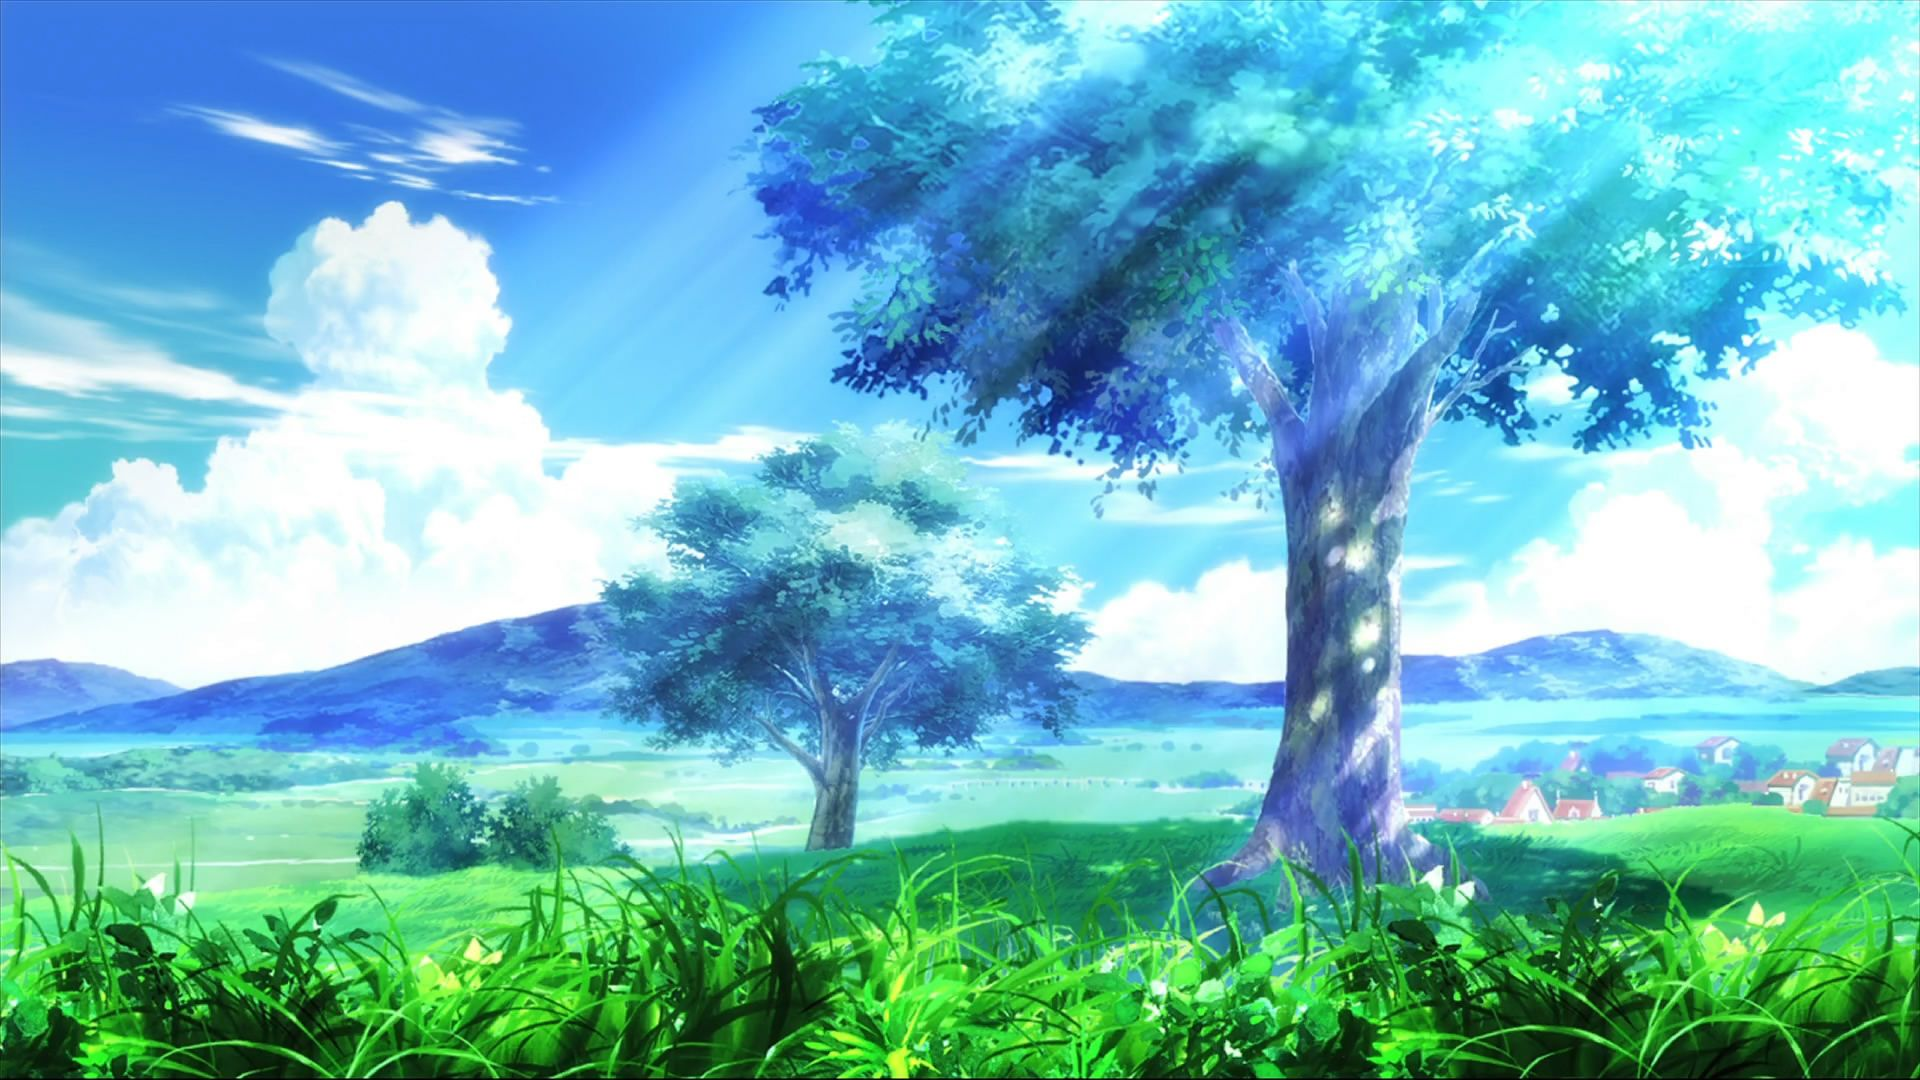 Anime Scenery Desktop Background